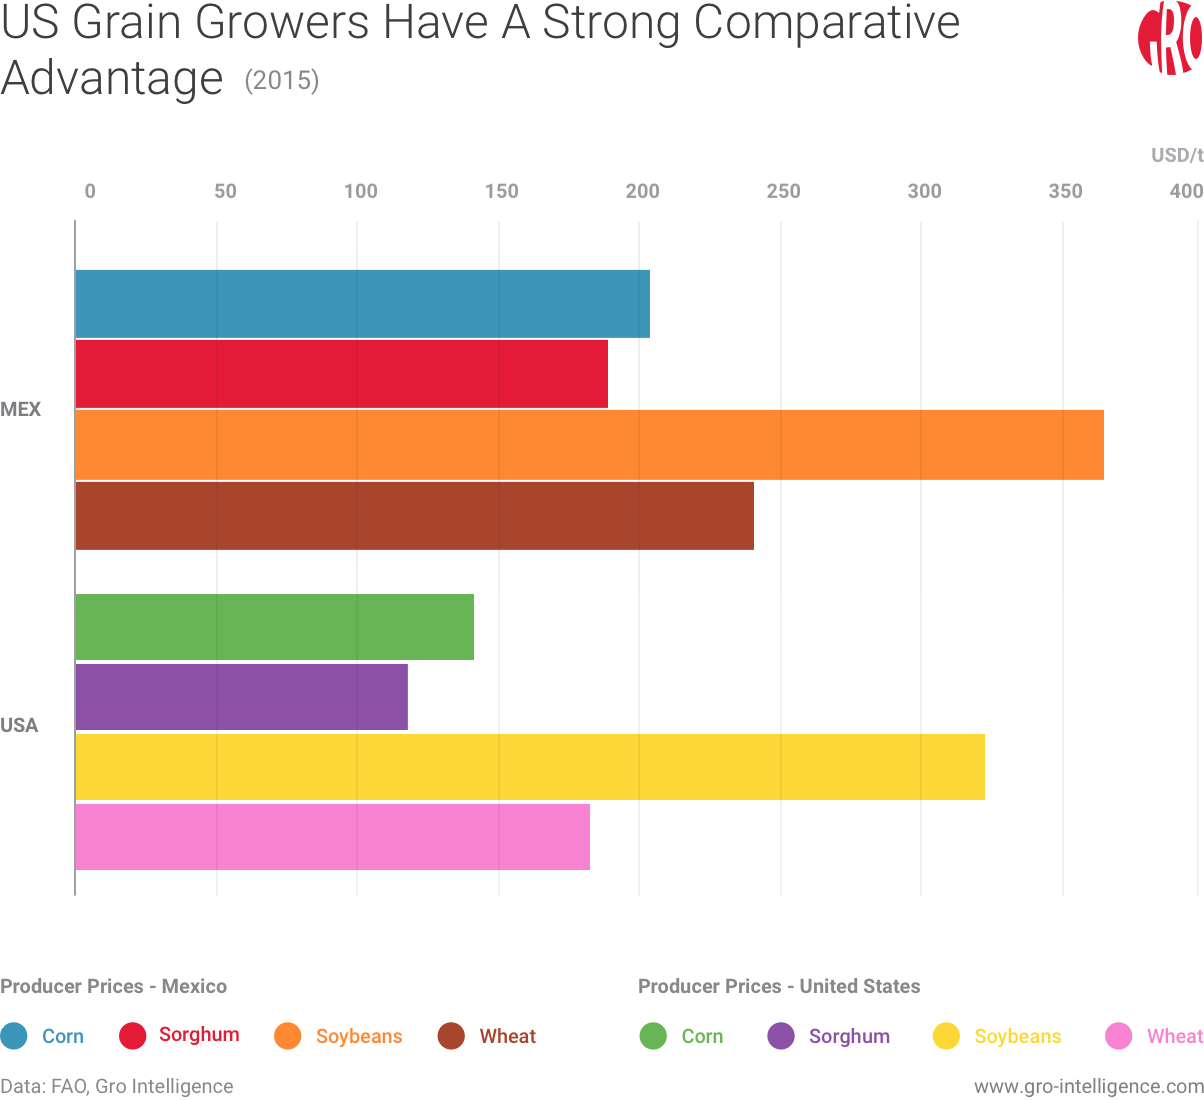 US Grain growers has a strong comparative advantage